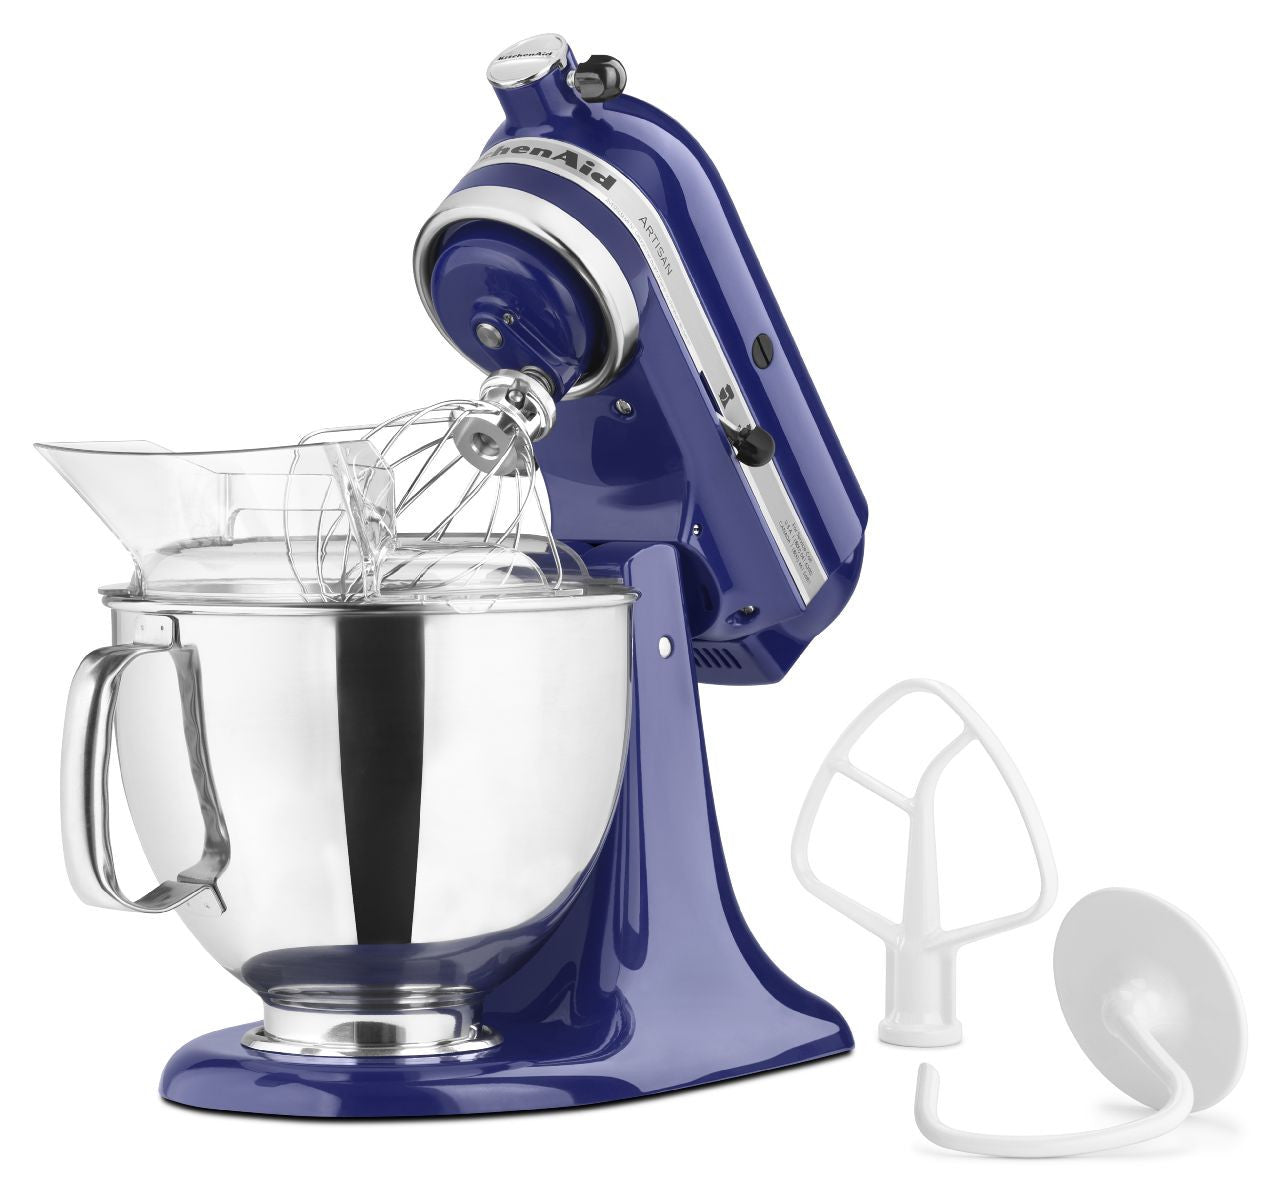 Kitchenaid 5 Qt. Artisan Series with Pouring Shield - Cobalt Blue KSM150PSBU